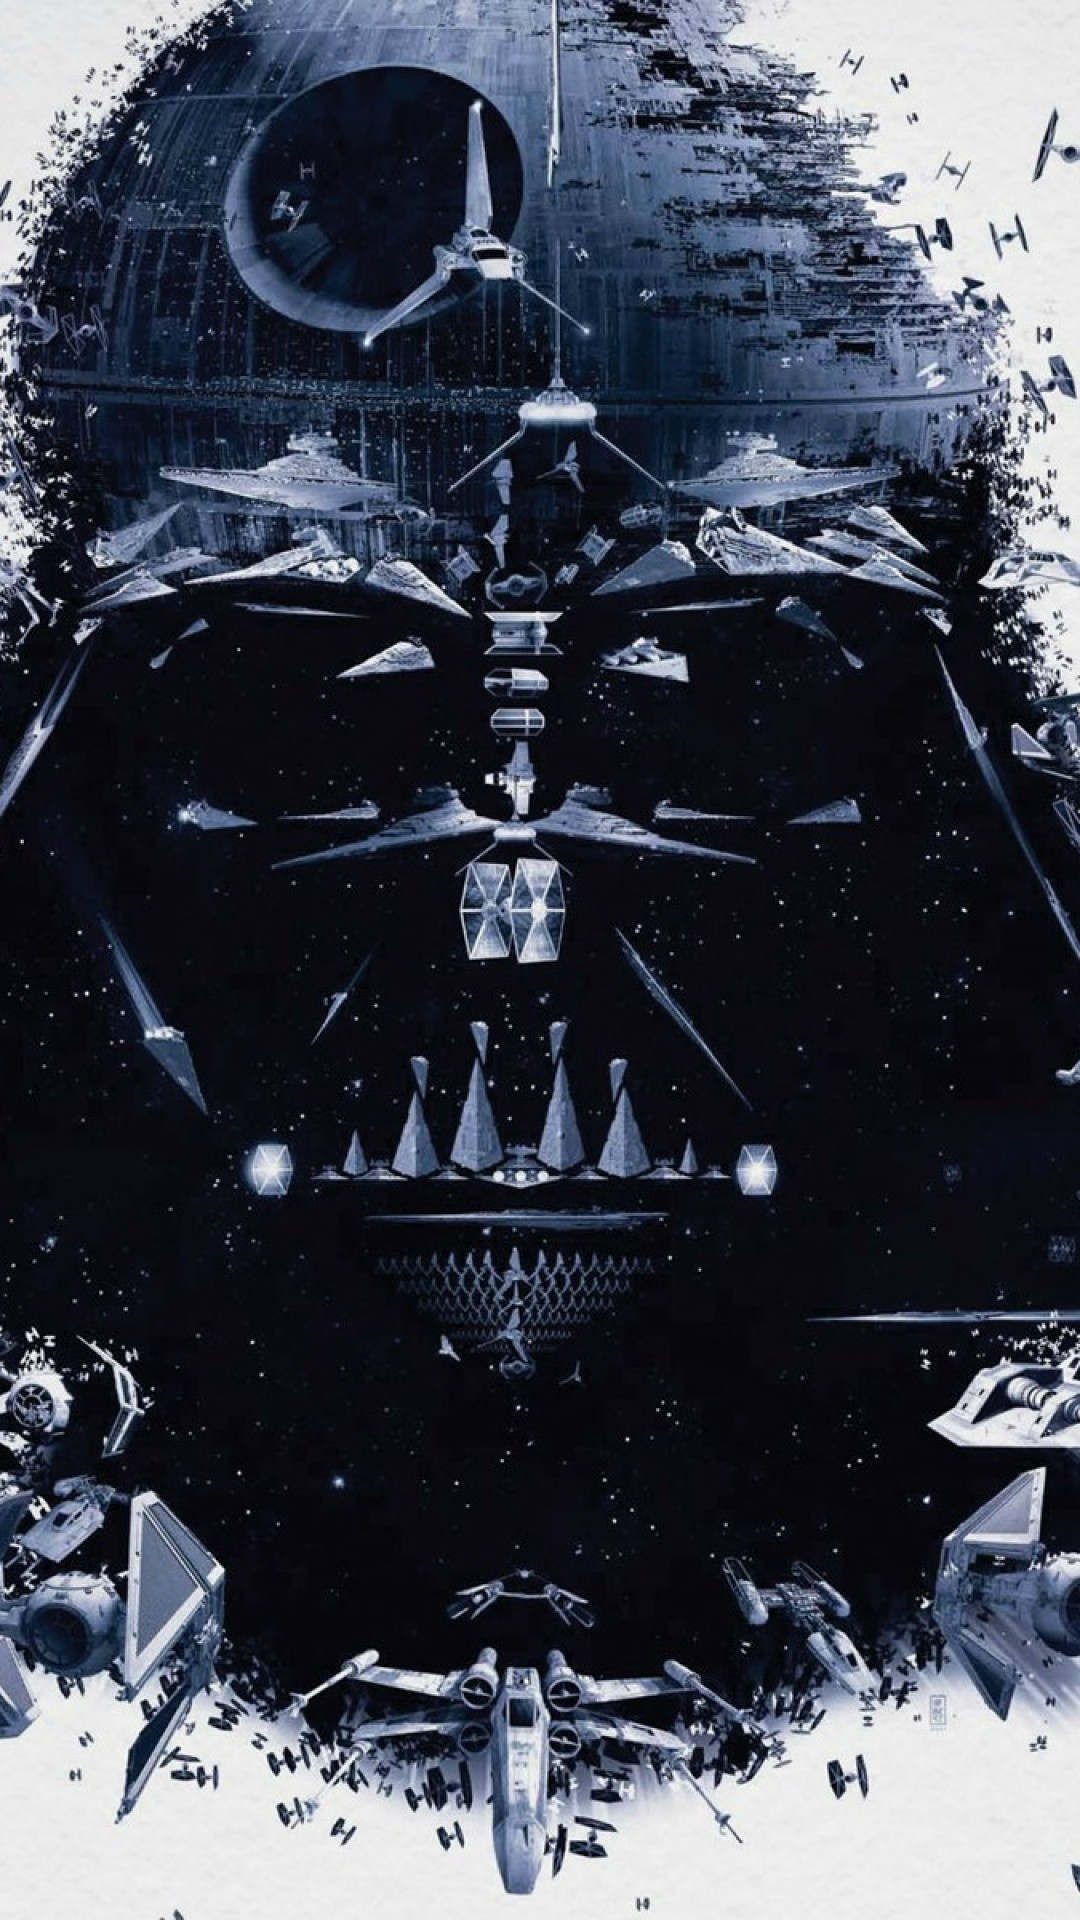 Star Wars Phone Wallpaper Airwallpaper Com